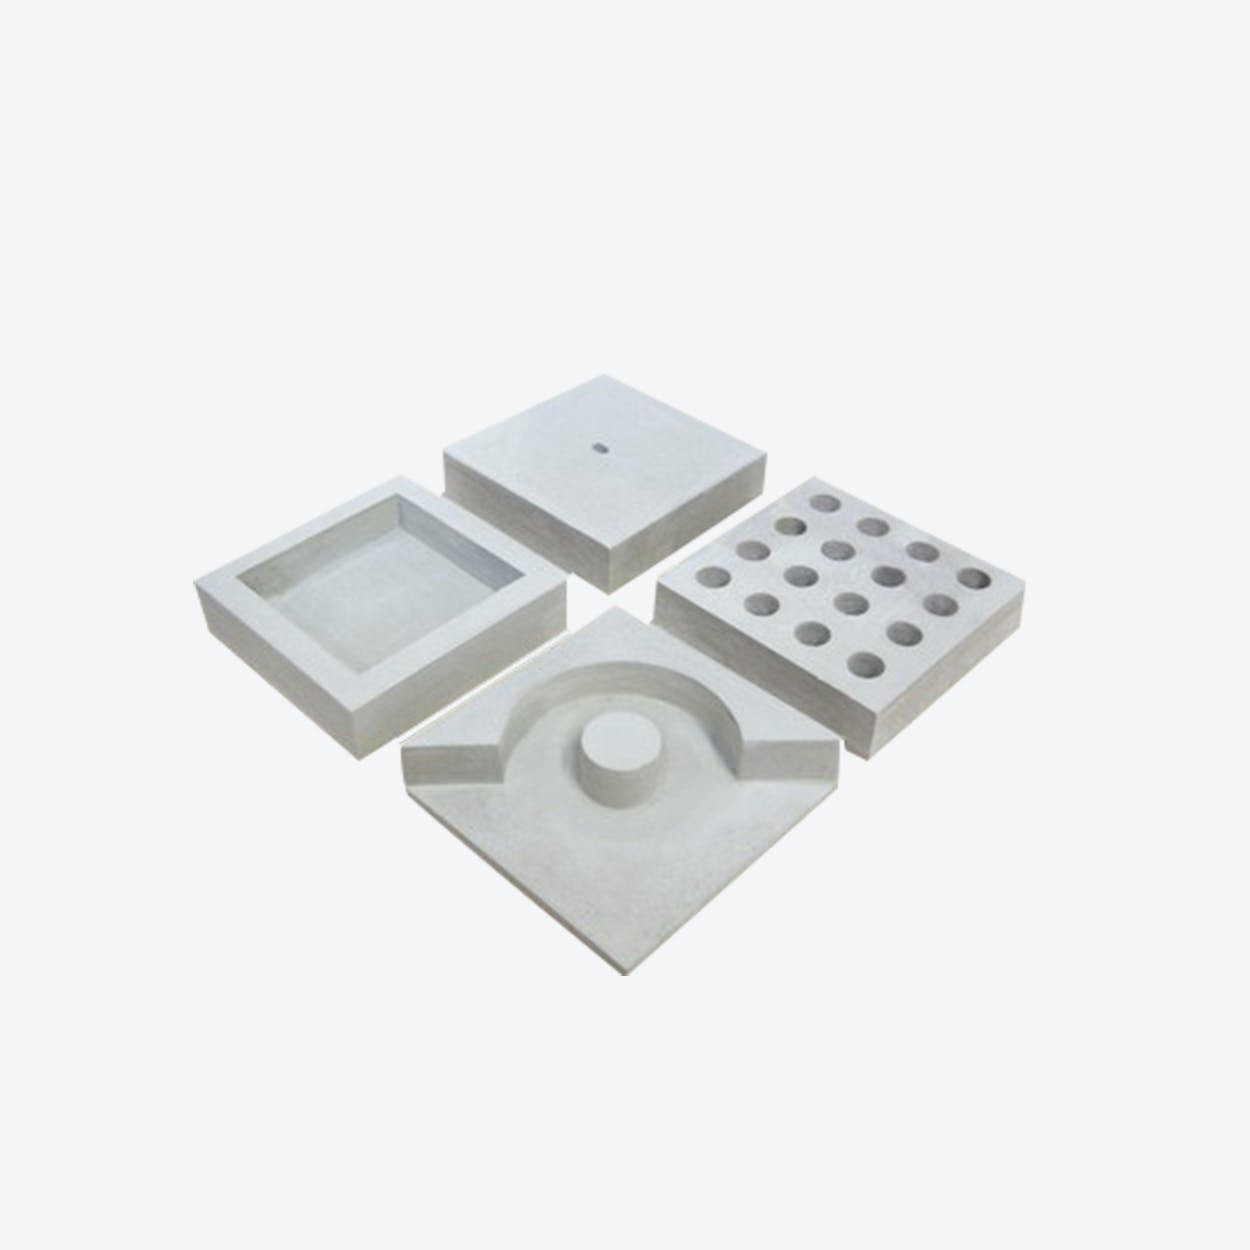 Slabs -  Desk Organizer in Light Grey Concrete (4 Pieces Set)